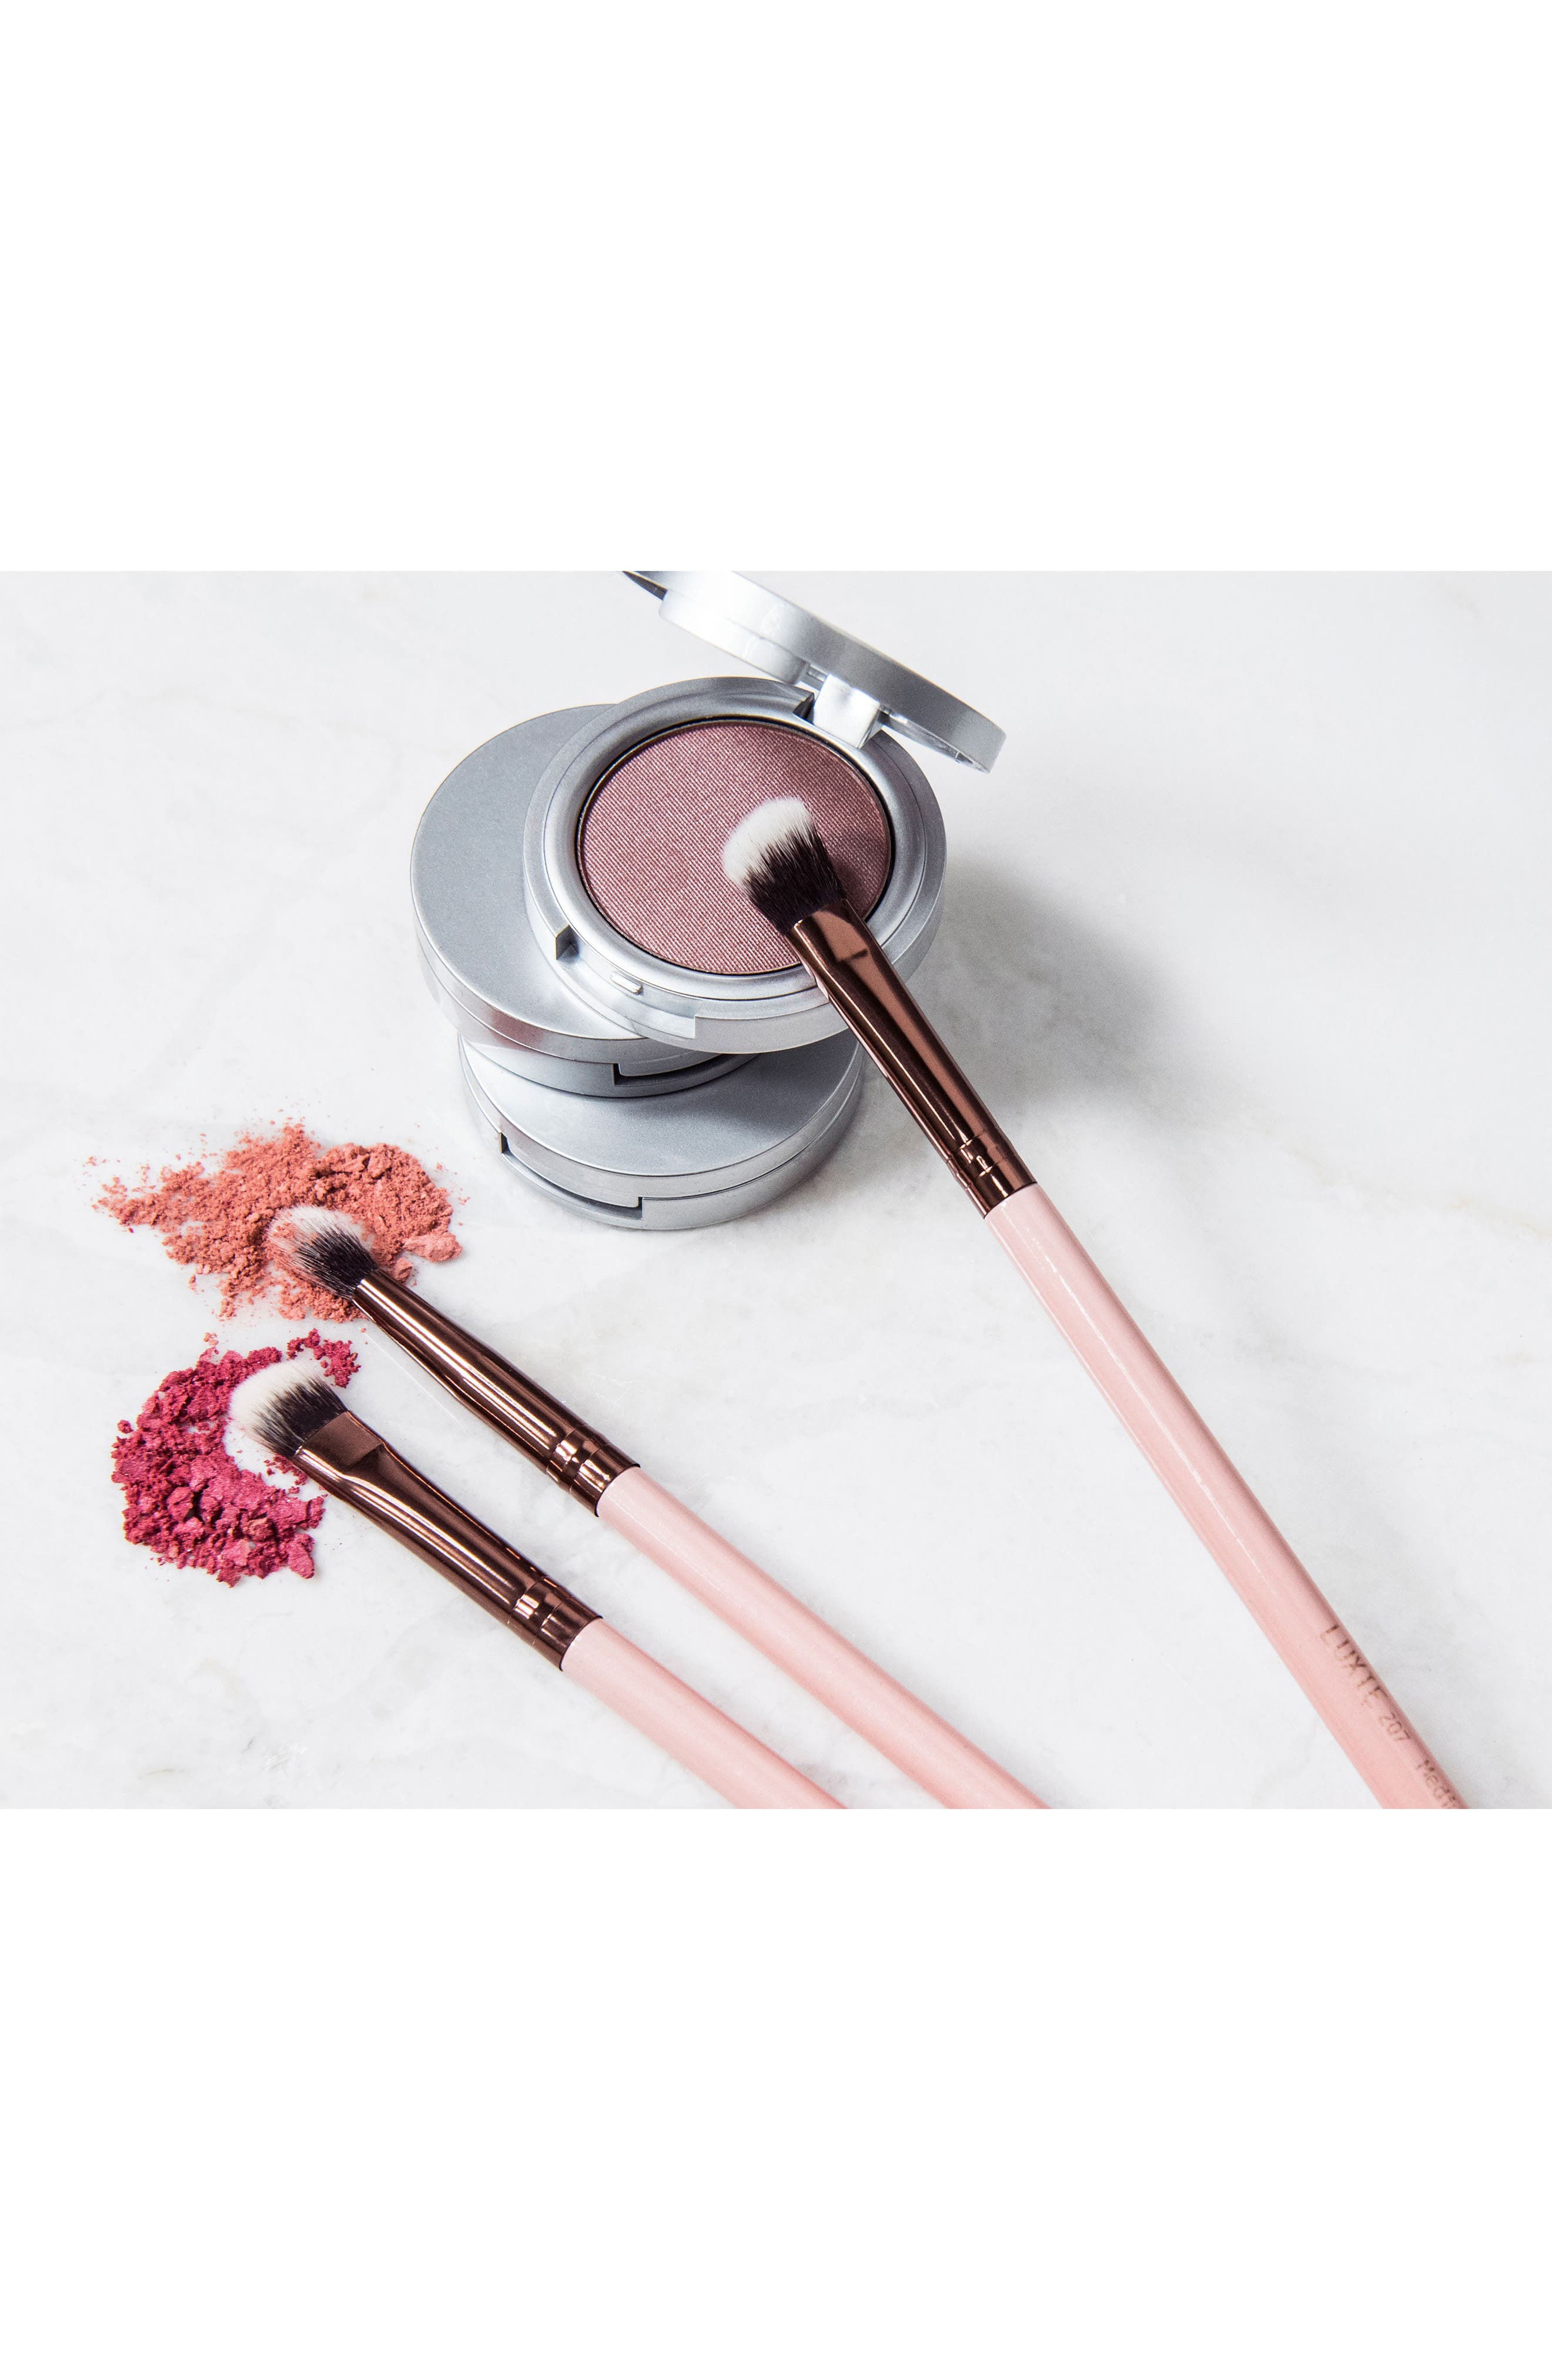 209 Rose Gold Large Shader Eye Brush,                             Alternate thumbnail 2, color,                             No Color